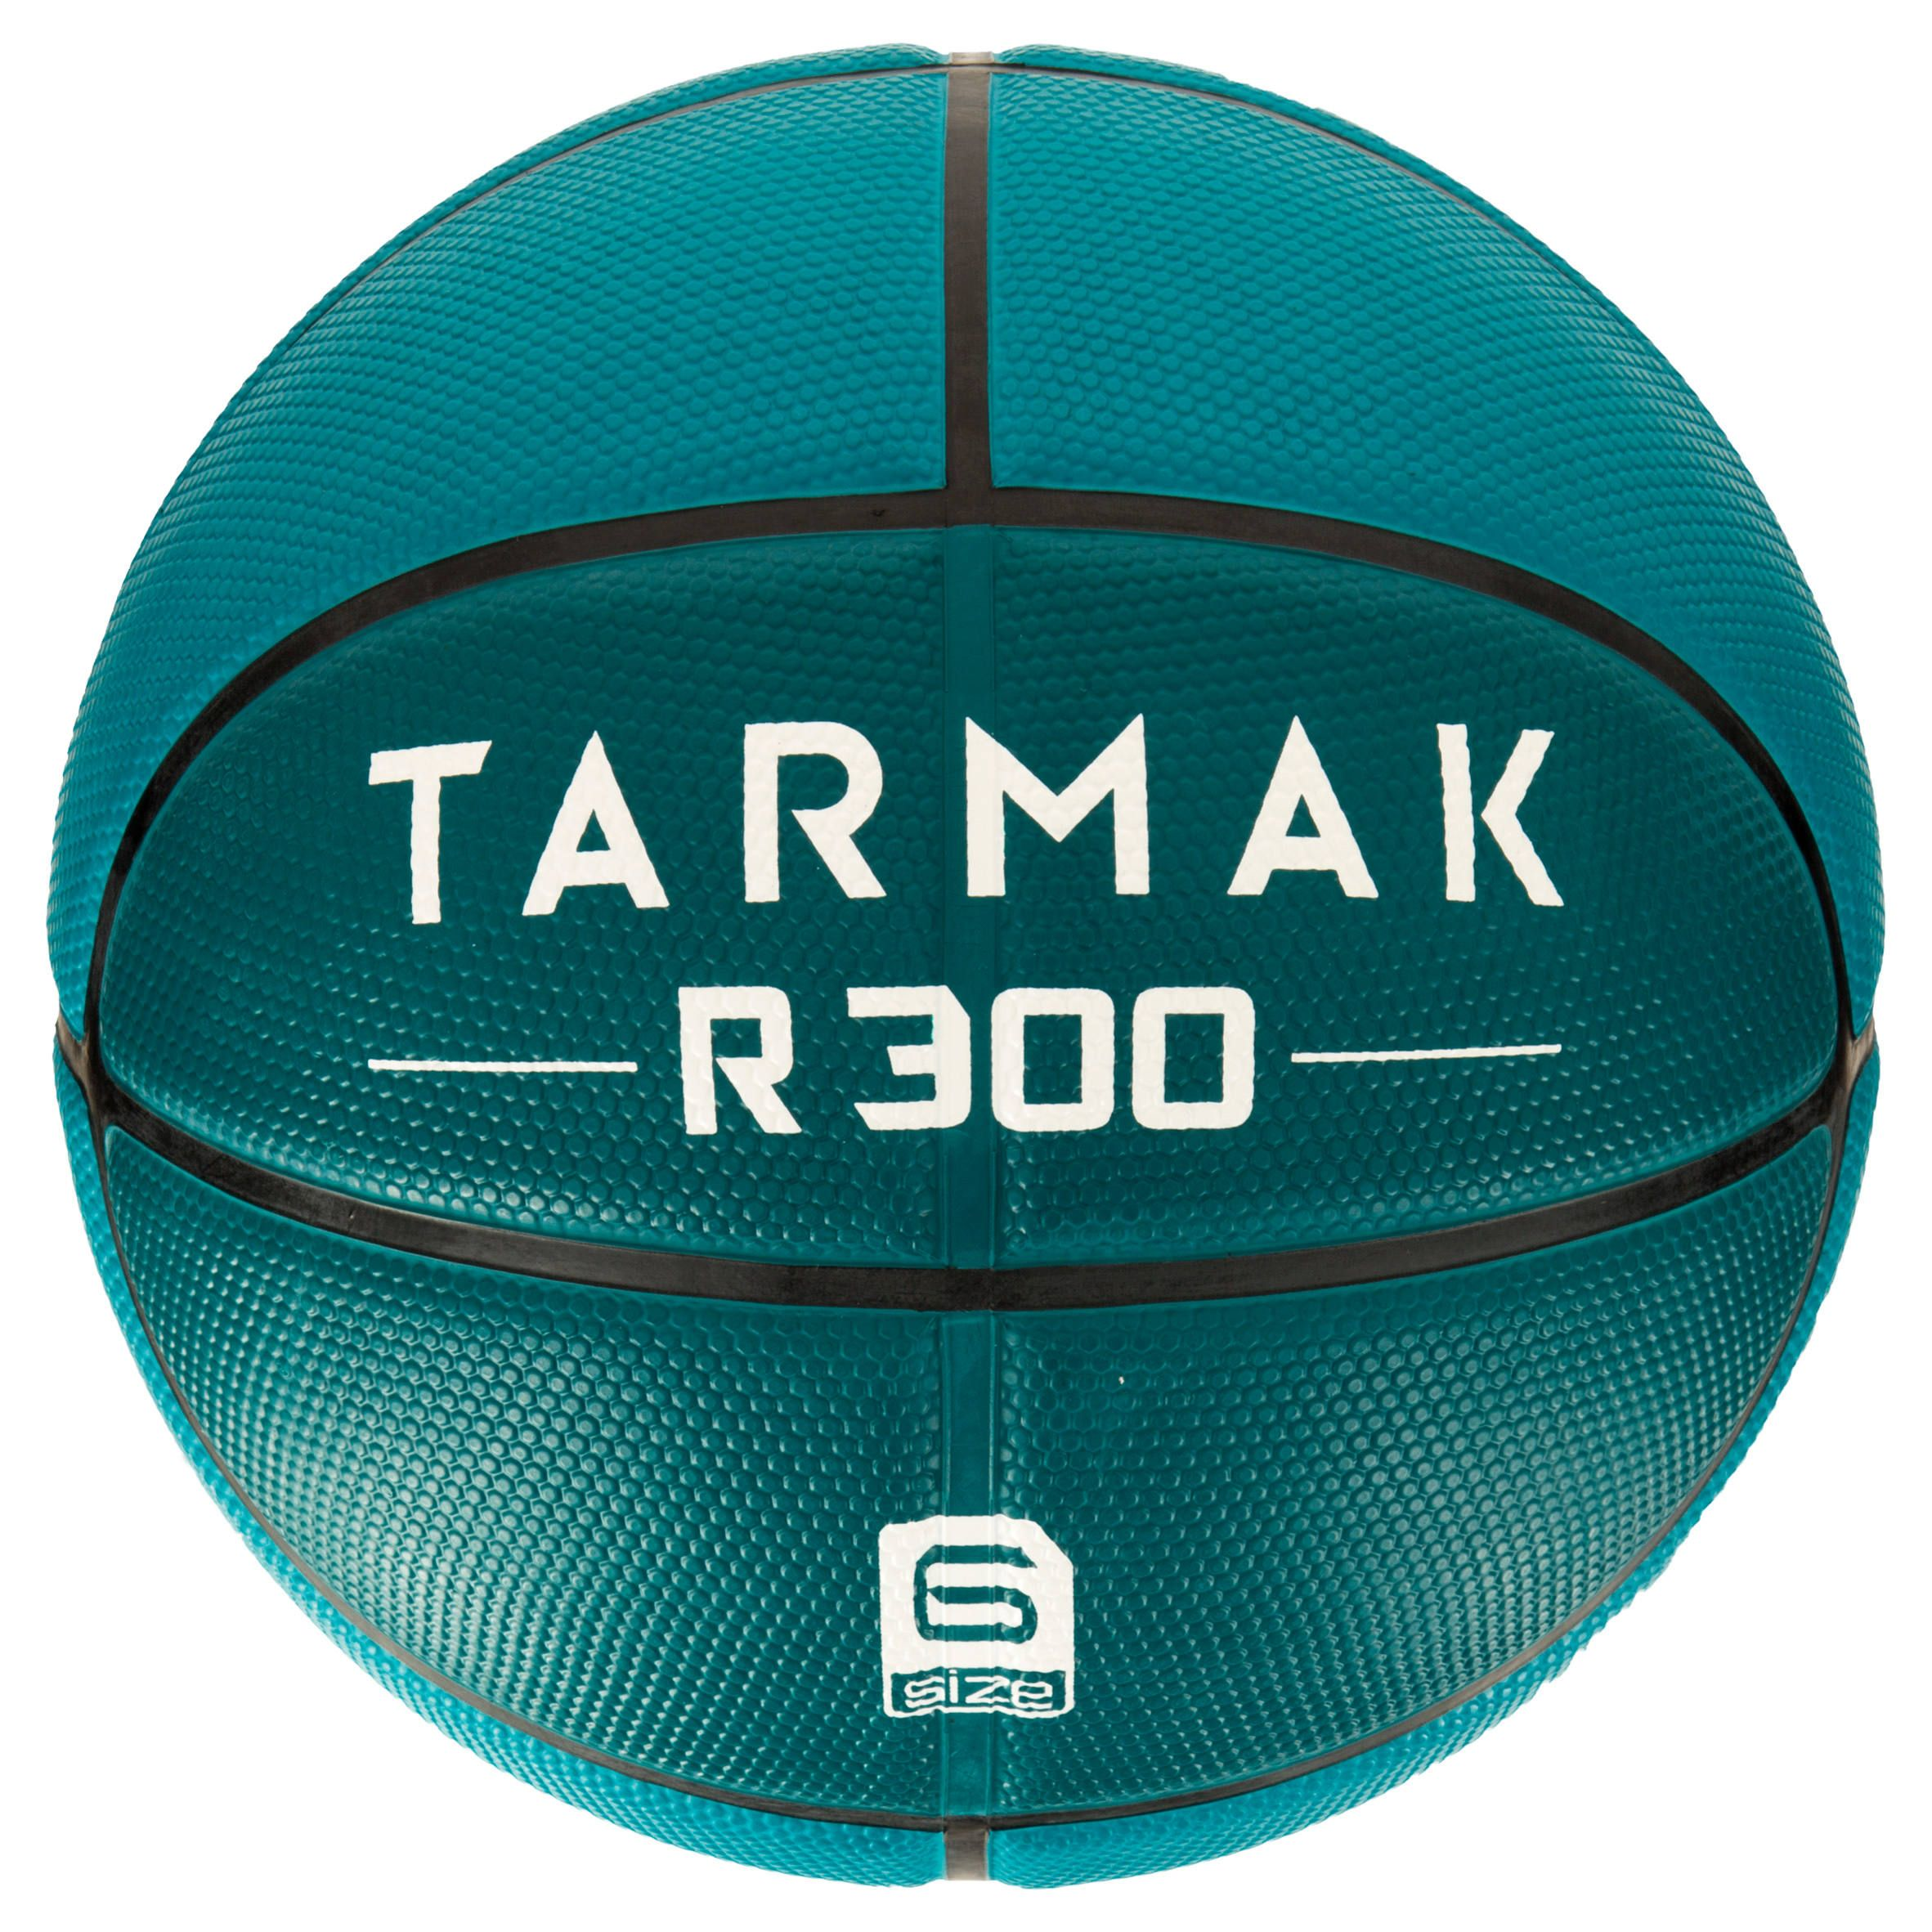 Balls R300 Women S Size 6 Basketball Greendurable Ages 10 And Up Decathlon Basketball Basketball Girls Decathlon